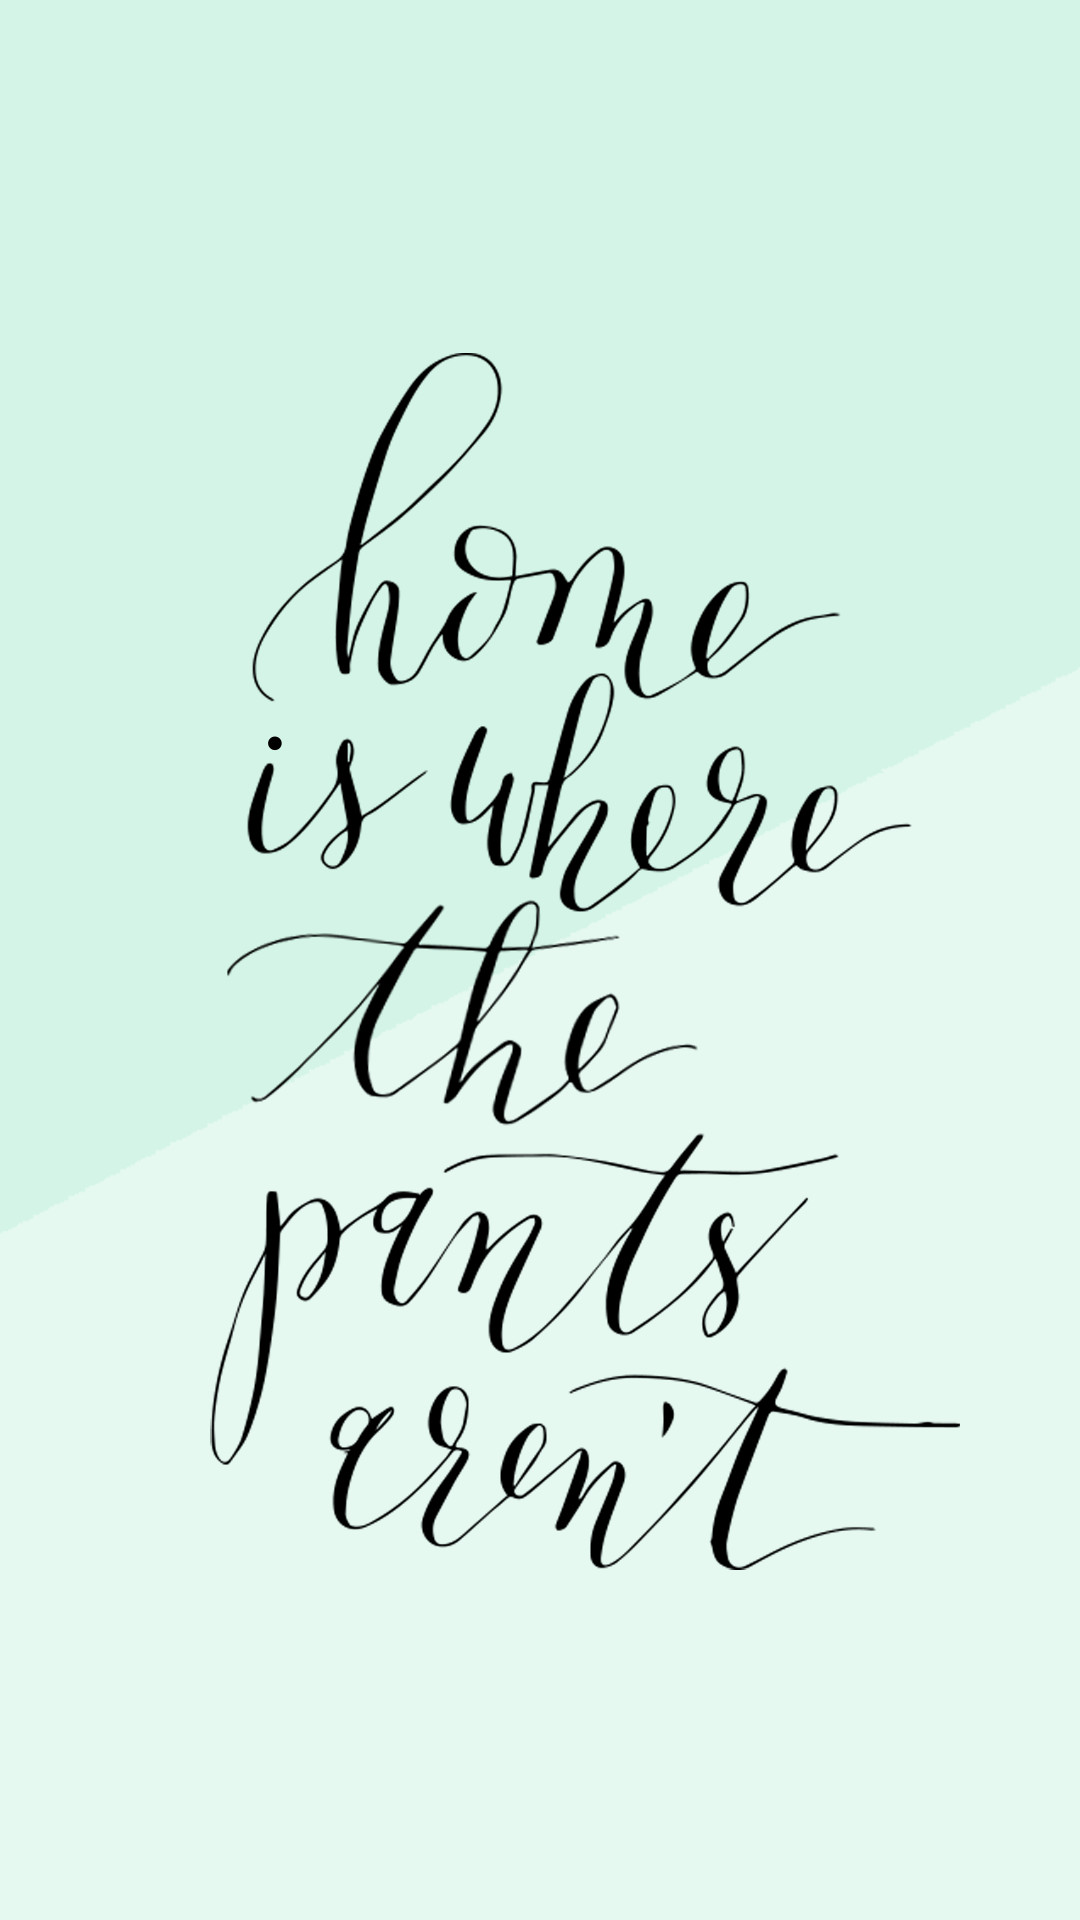 Download your free wallpapers, choose from four calligraphy quotes with  marble textures.